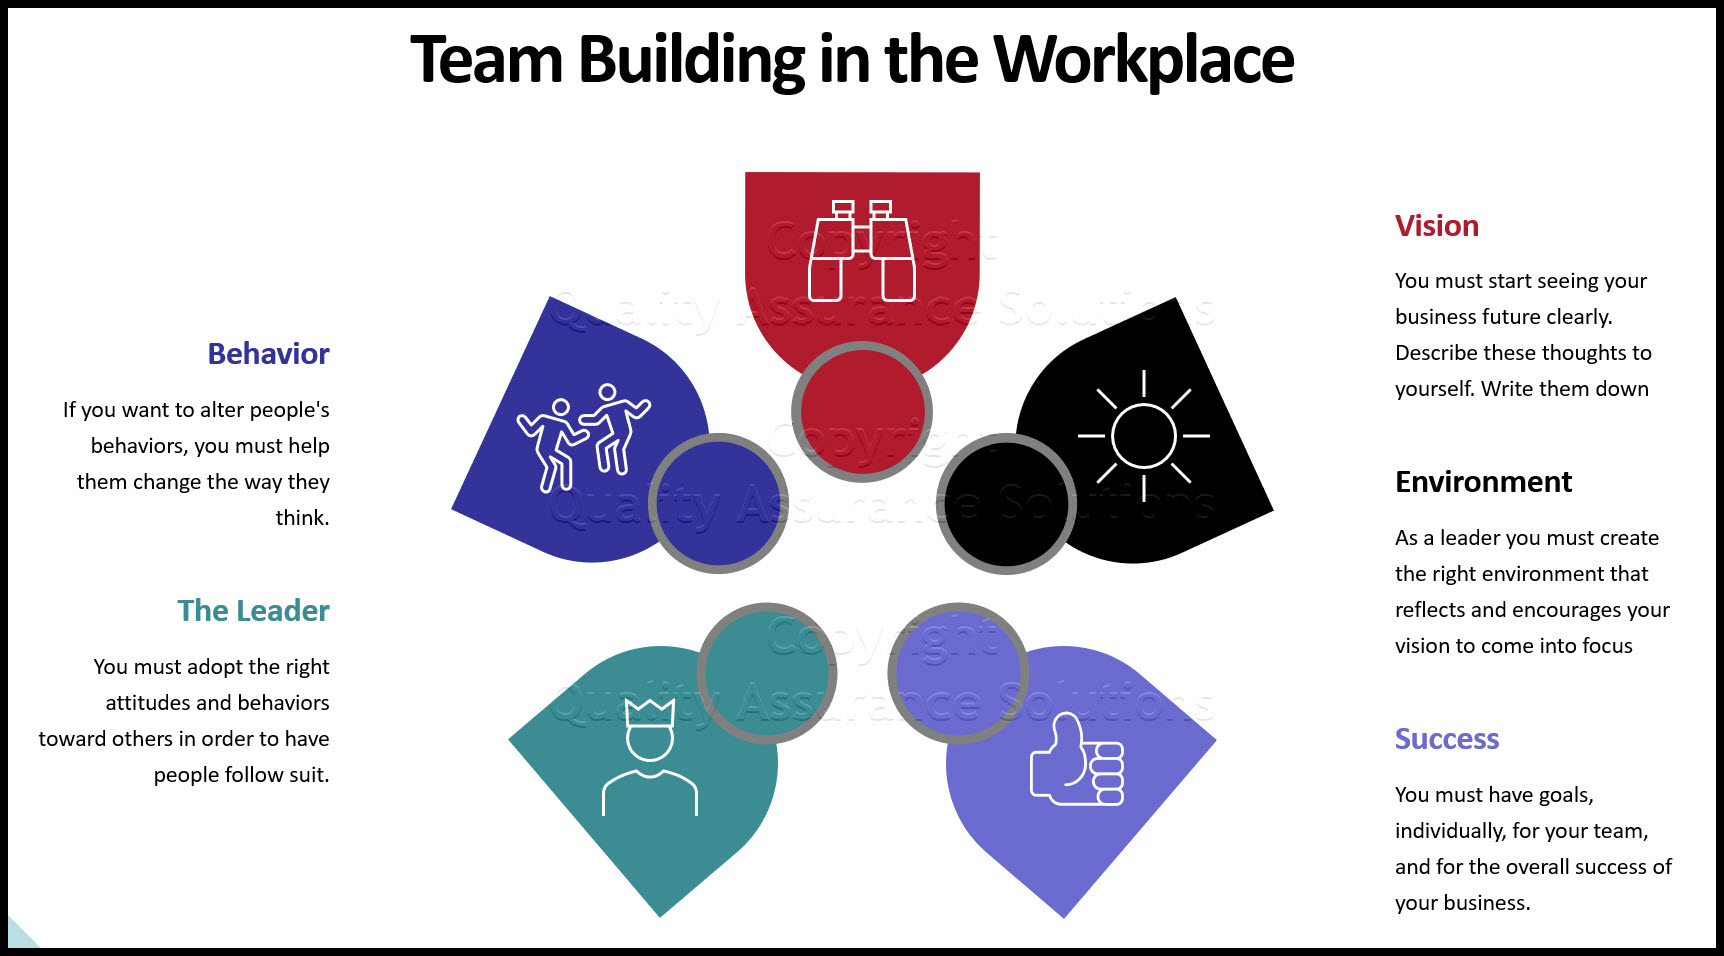 Team Building in the Workplace business slide